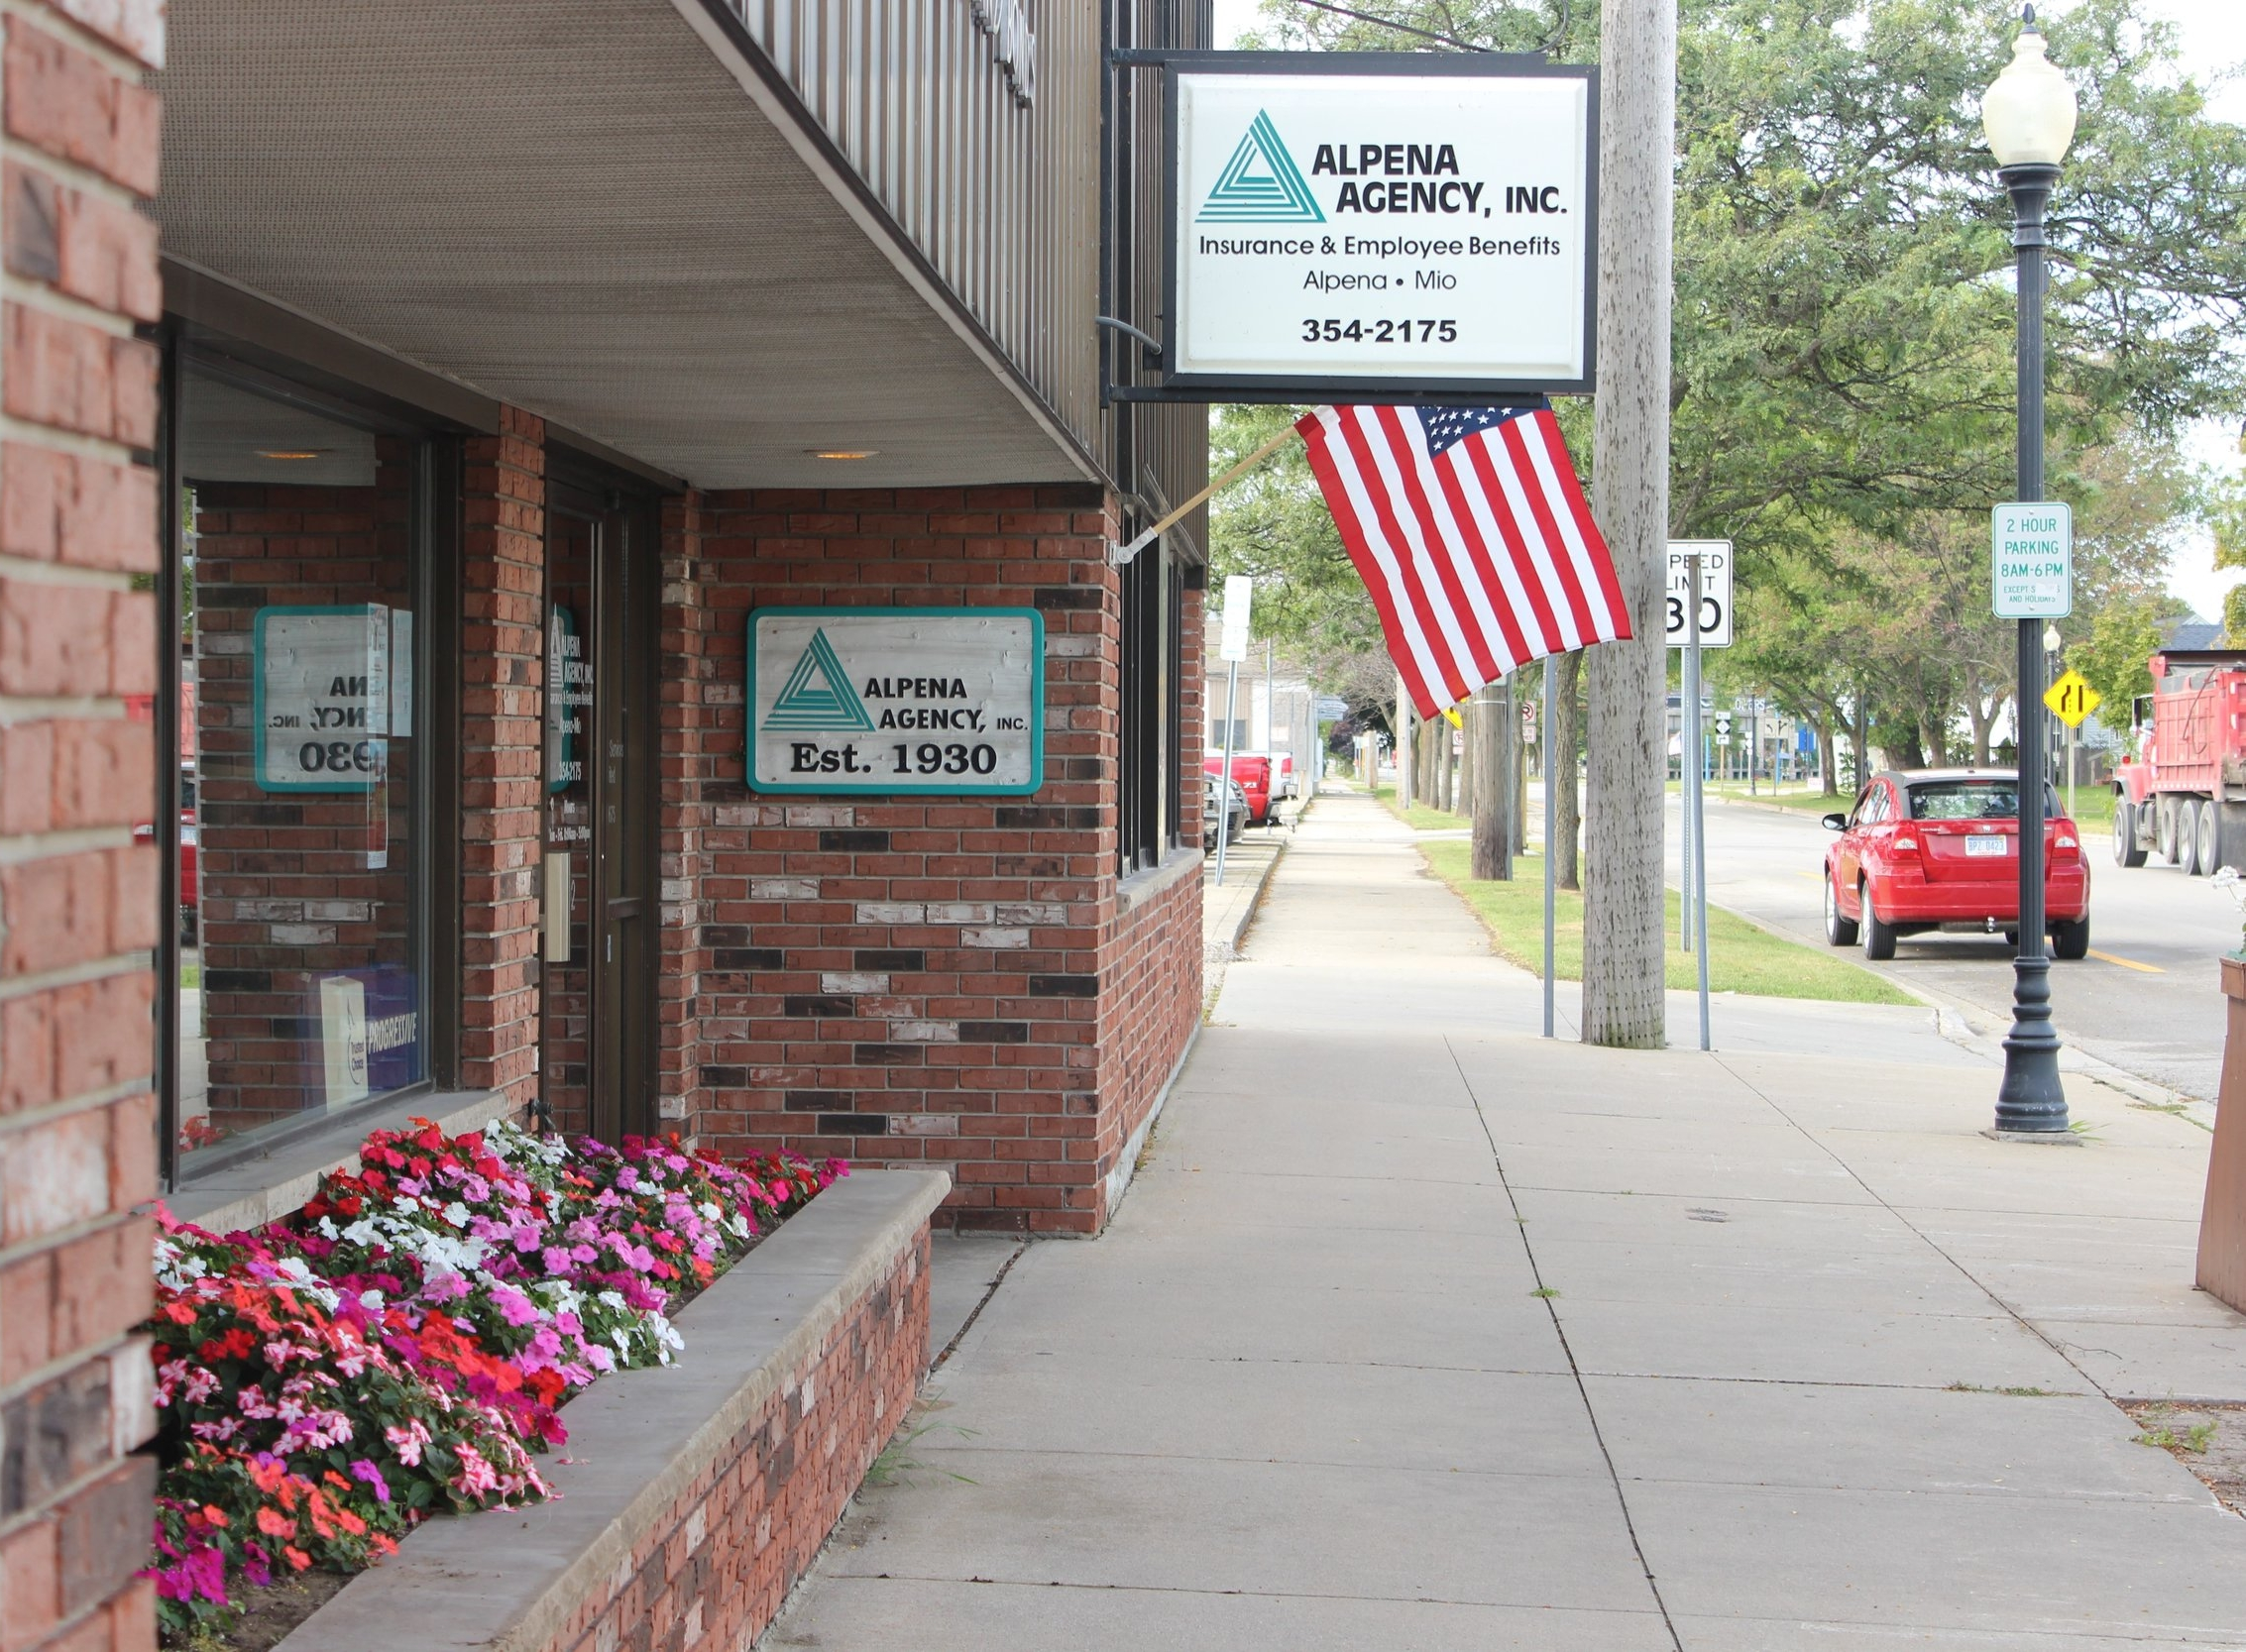 Alpena Office - 102 S. Third AvenueAlpena, MI 49707Monday - Friday8am - 5pmCall: (989) 354-2175Email: insurance@alpenaagency.comText:  (989) 354-2175Fax:  (989) 354-8974